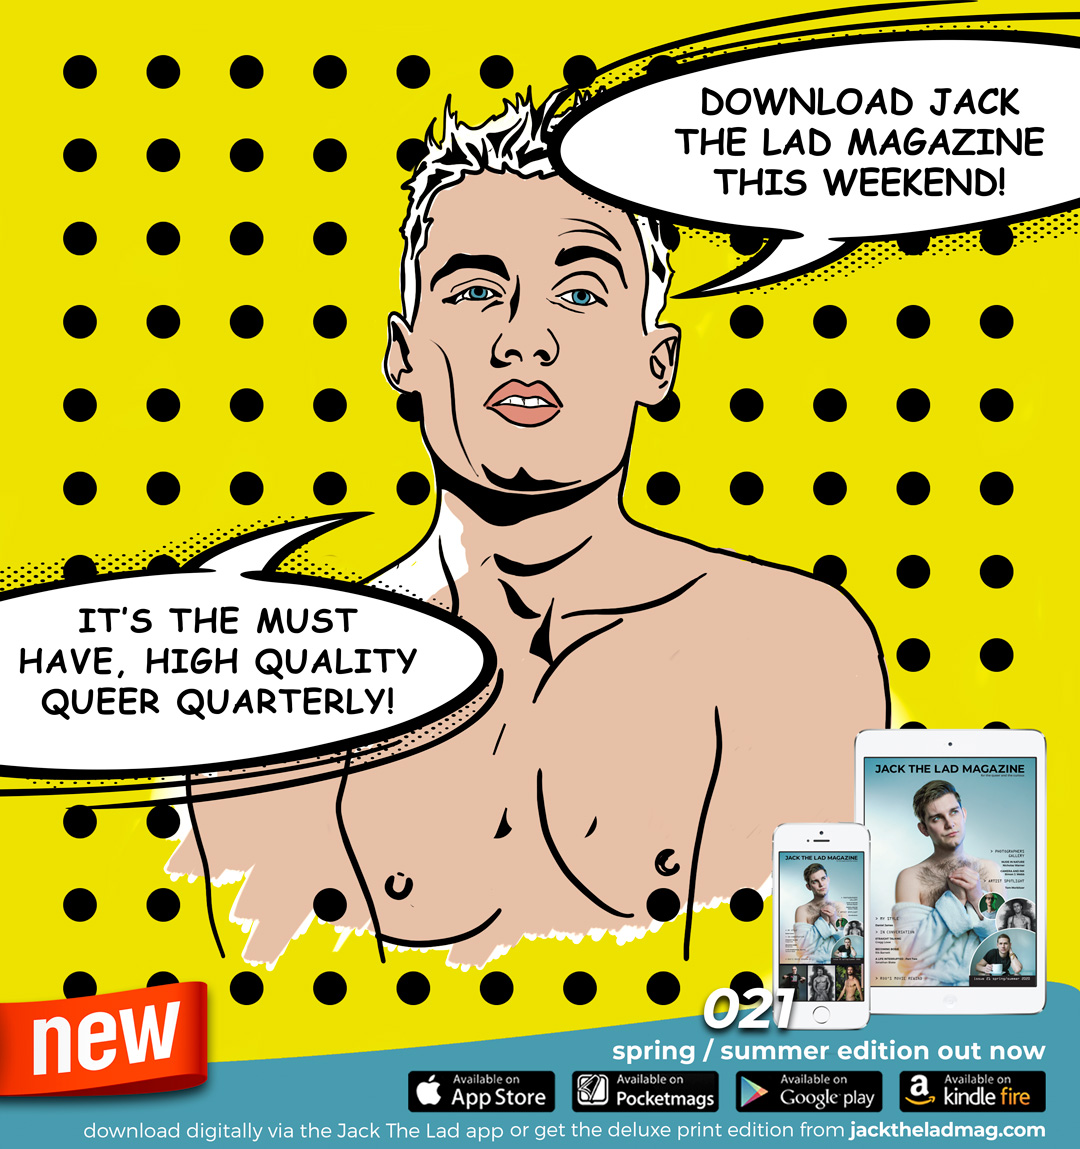 Theres not much to smile about in these days of self isolation, but we hope the brand new issue of Jack The Lad will help get you through it. 148 ad-free pages packed with awesome art, photography, interviews fashion & reviews available to download now via the Jack The Lad app.